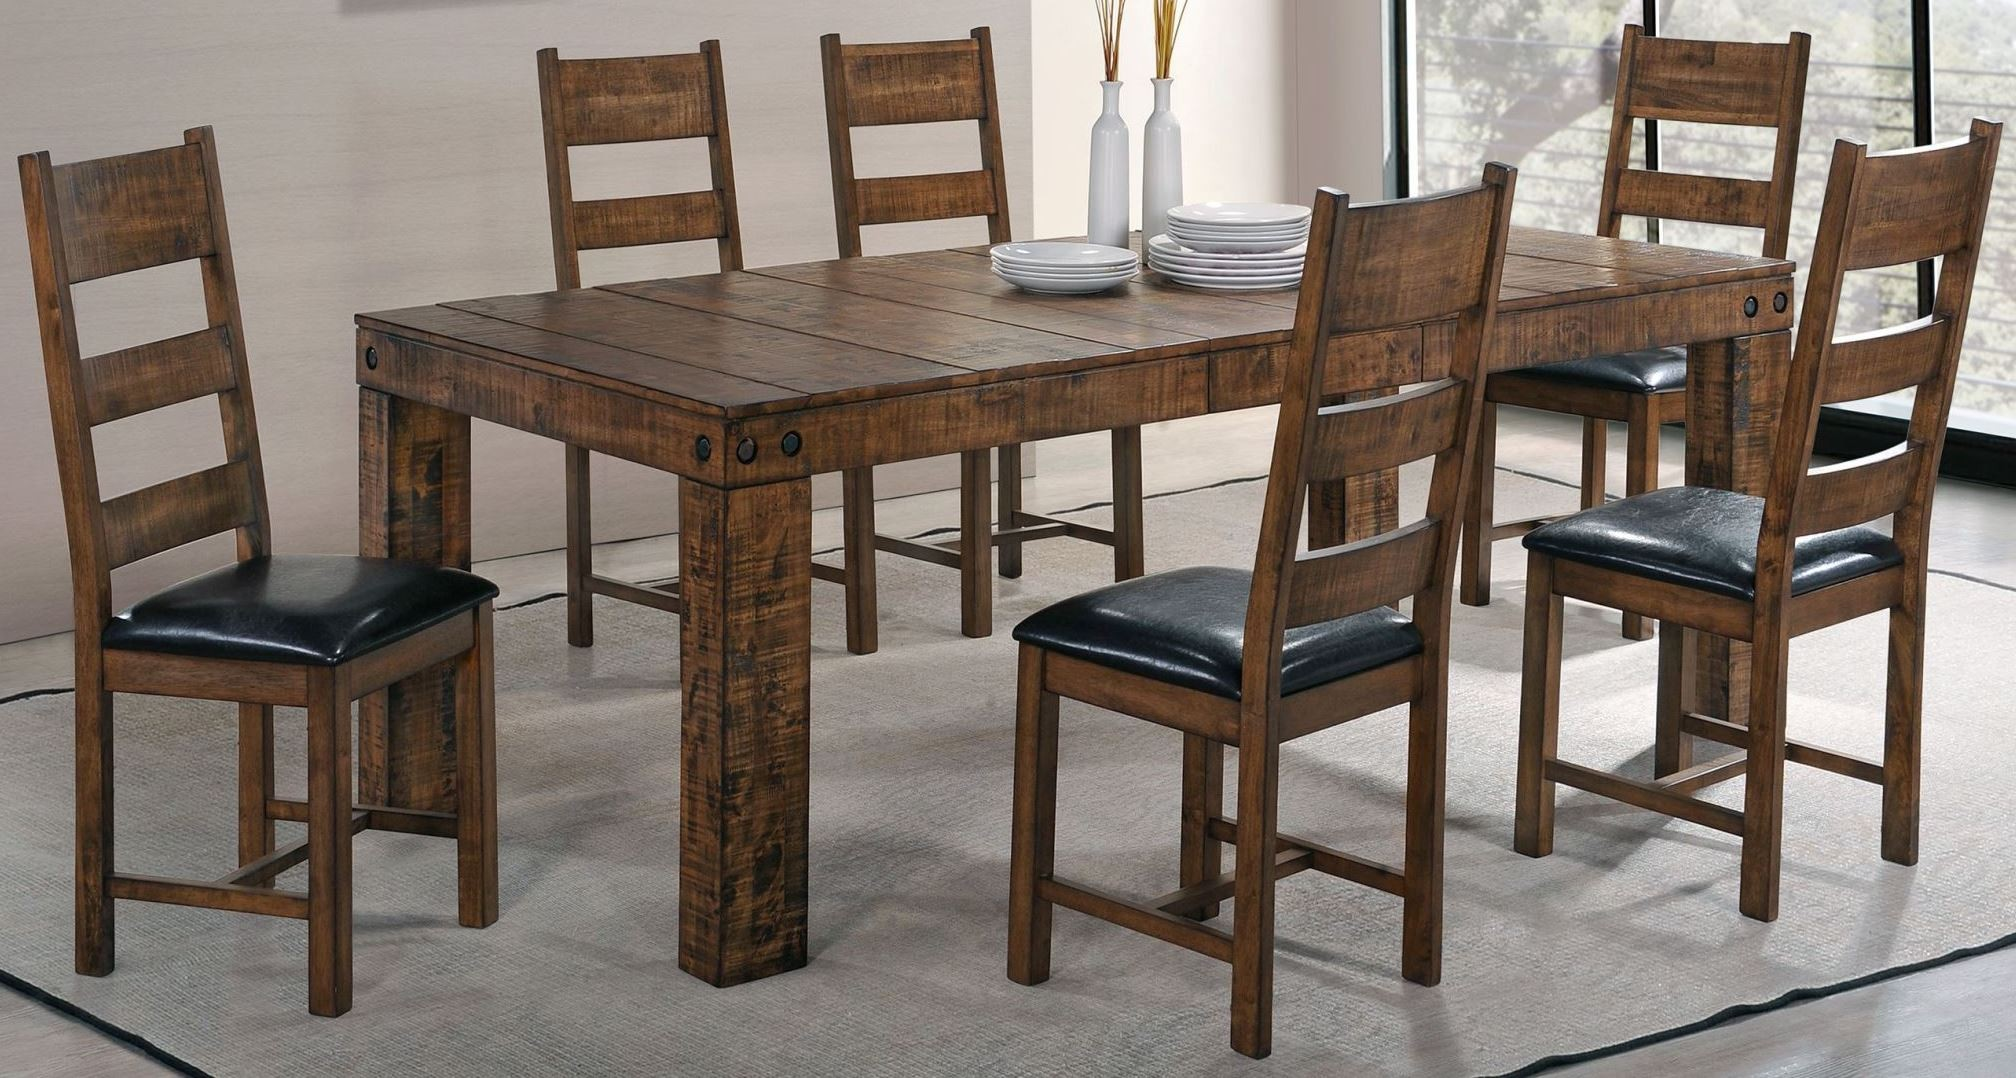 Rustic Extendable Dining Room Table Orient express  : 106001 1060021 from sophiology.us size 2016 x 1078 jpeg 470kB